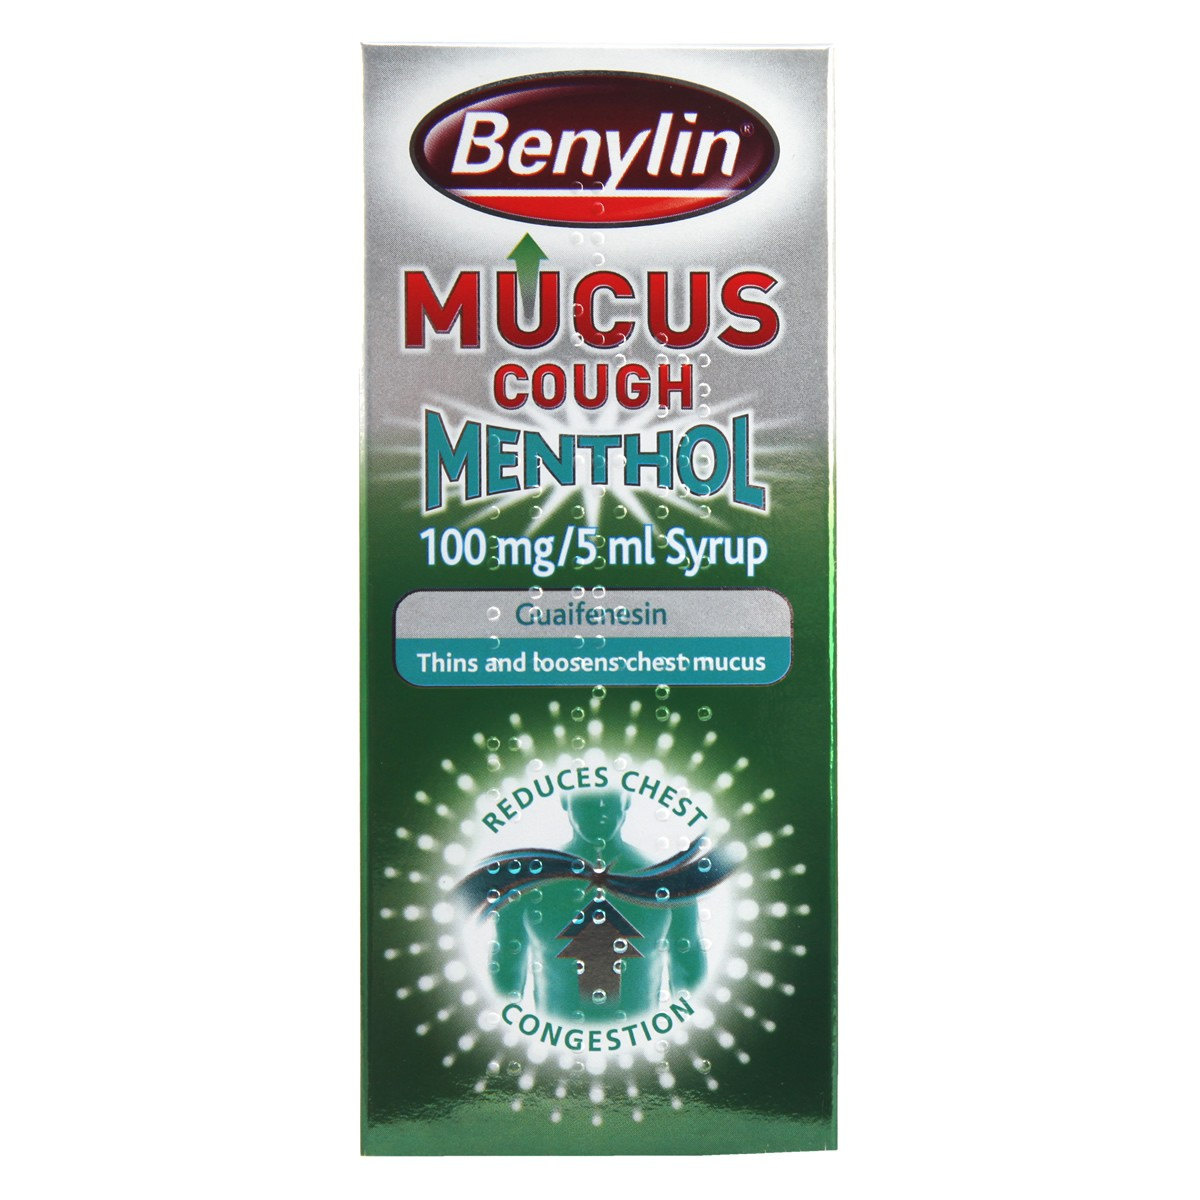 Benylin Mucus Cough Menthol 100mg/5ml Syrup